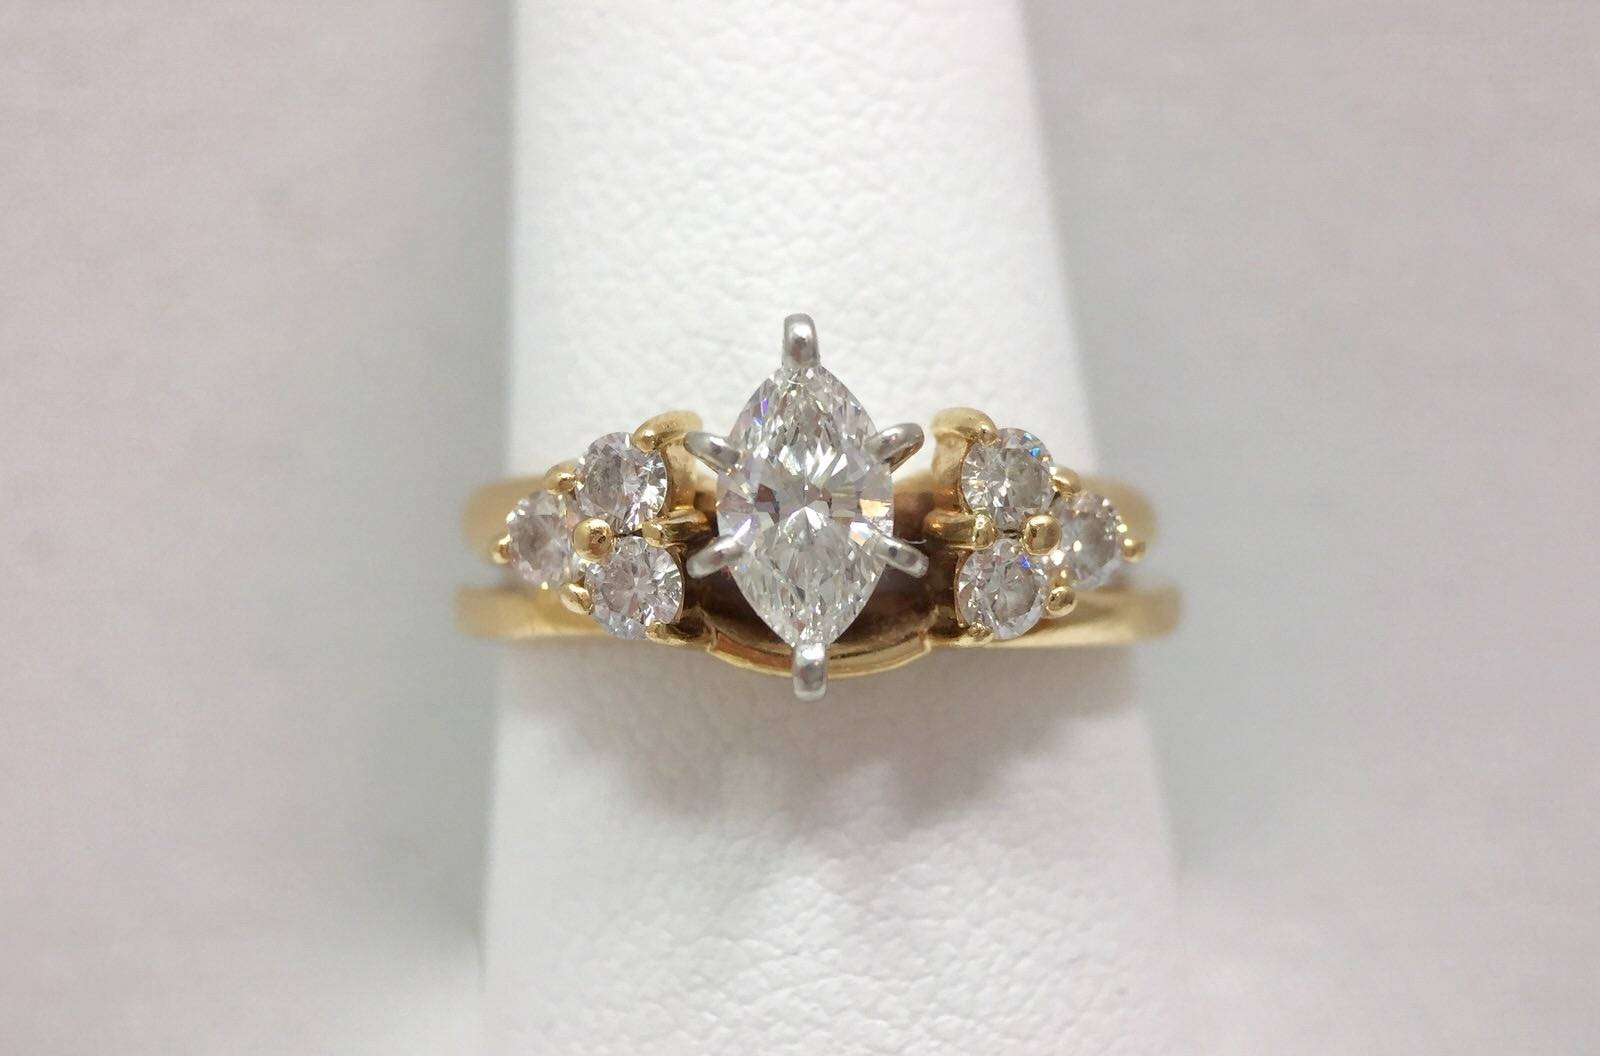 3/4ct Marquise Diamond Solitaire Accent Wedding Anniversary Ring 7 In Most Popular 7 Marquise Diamond Anniversary Rings (View 9 of 25)